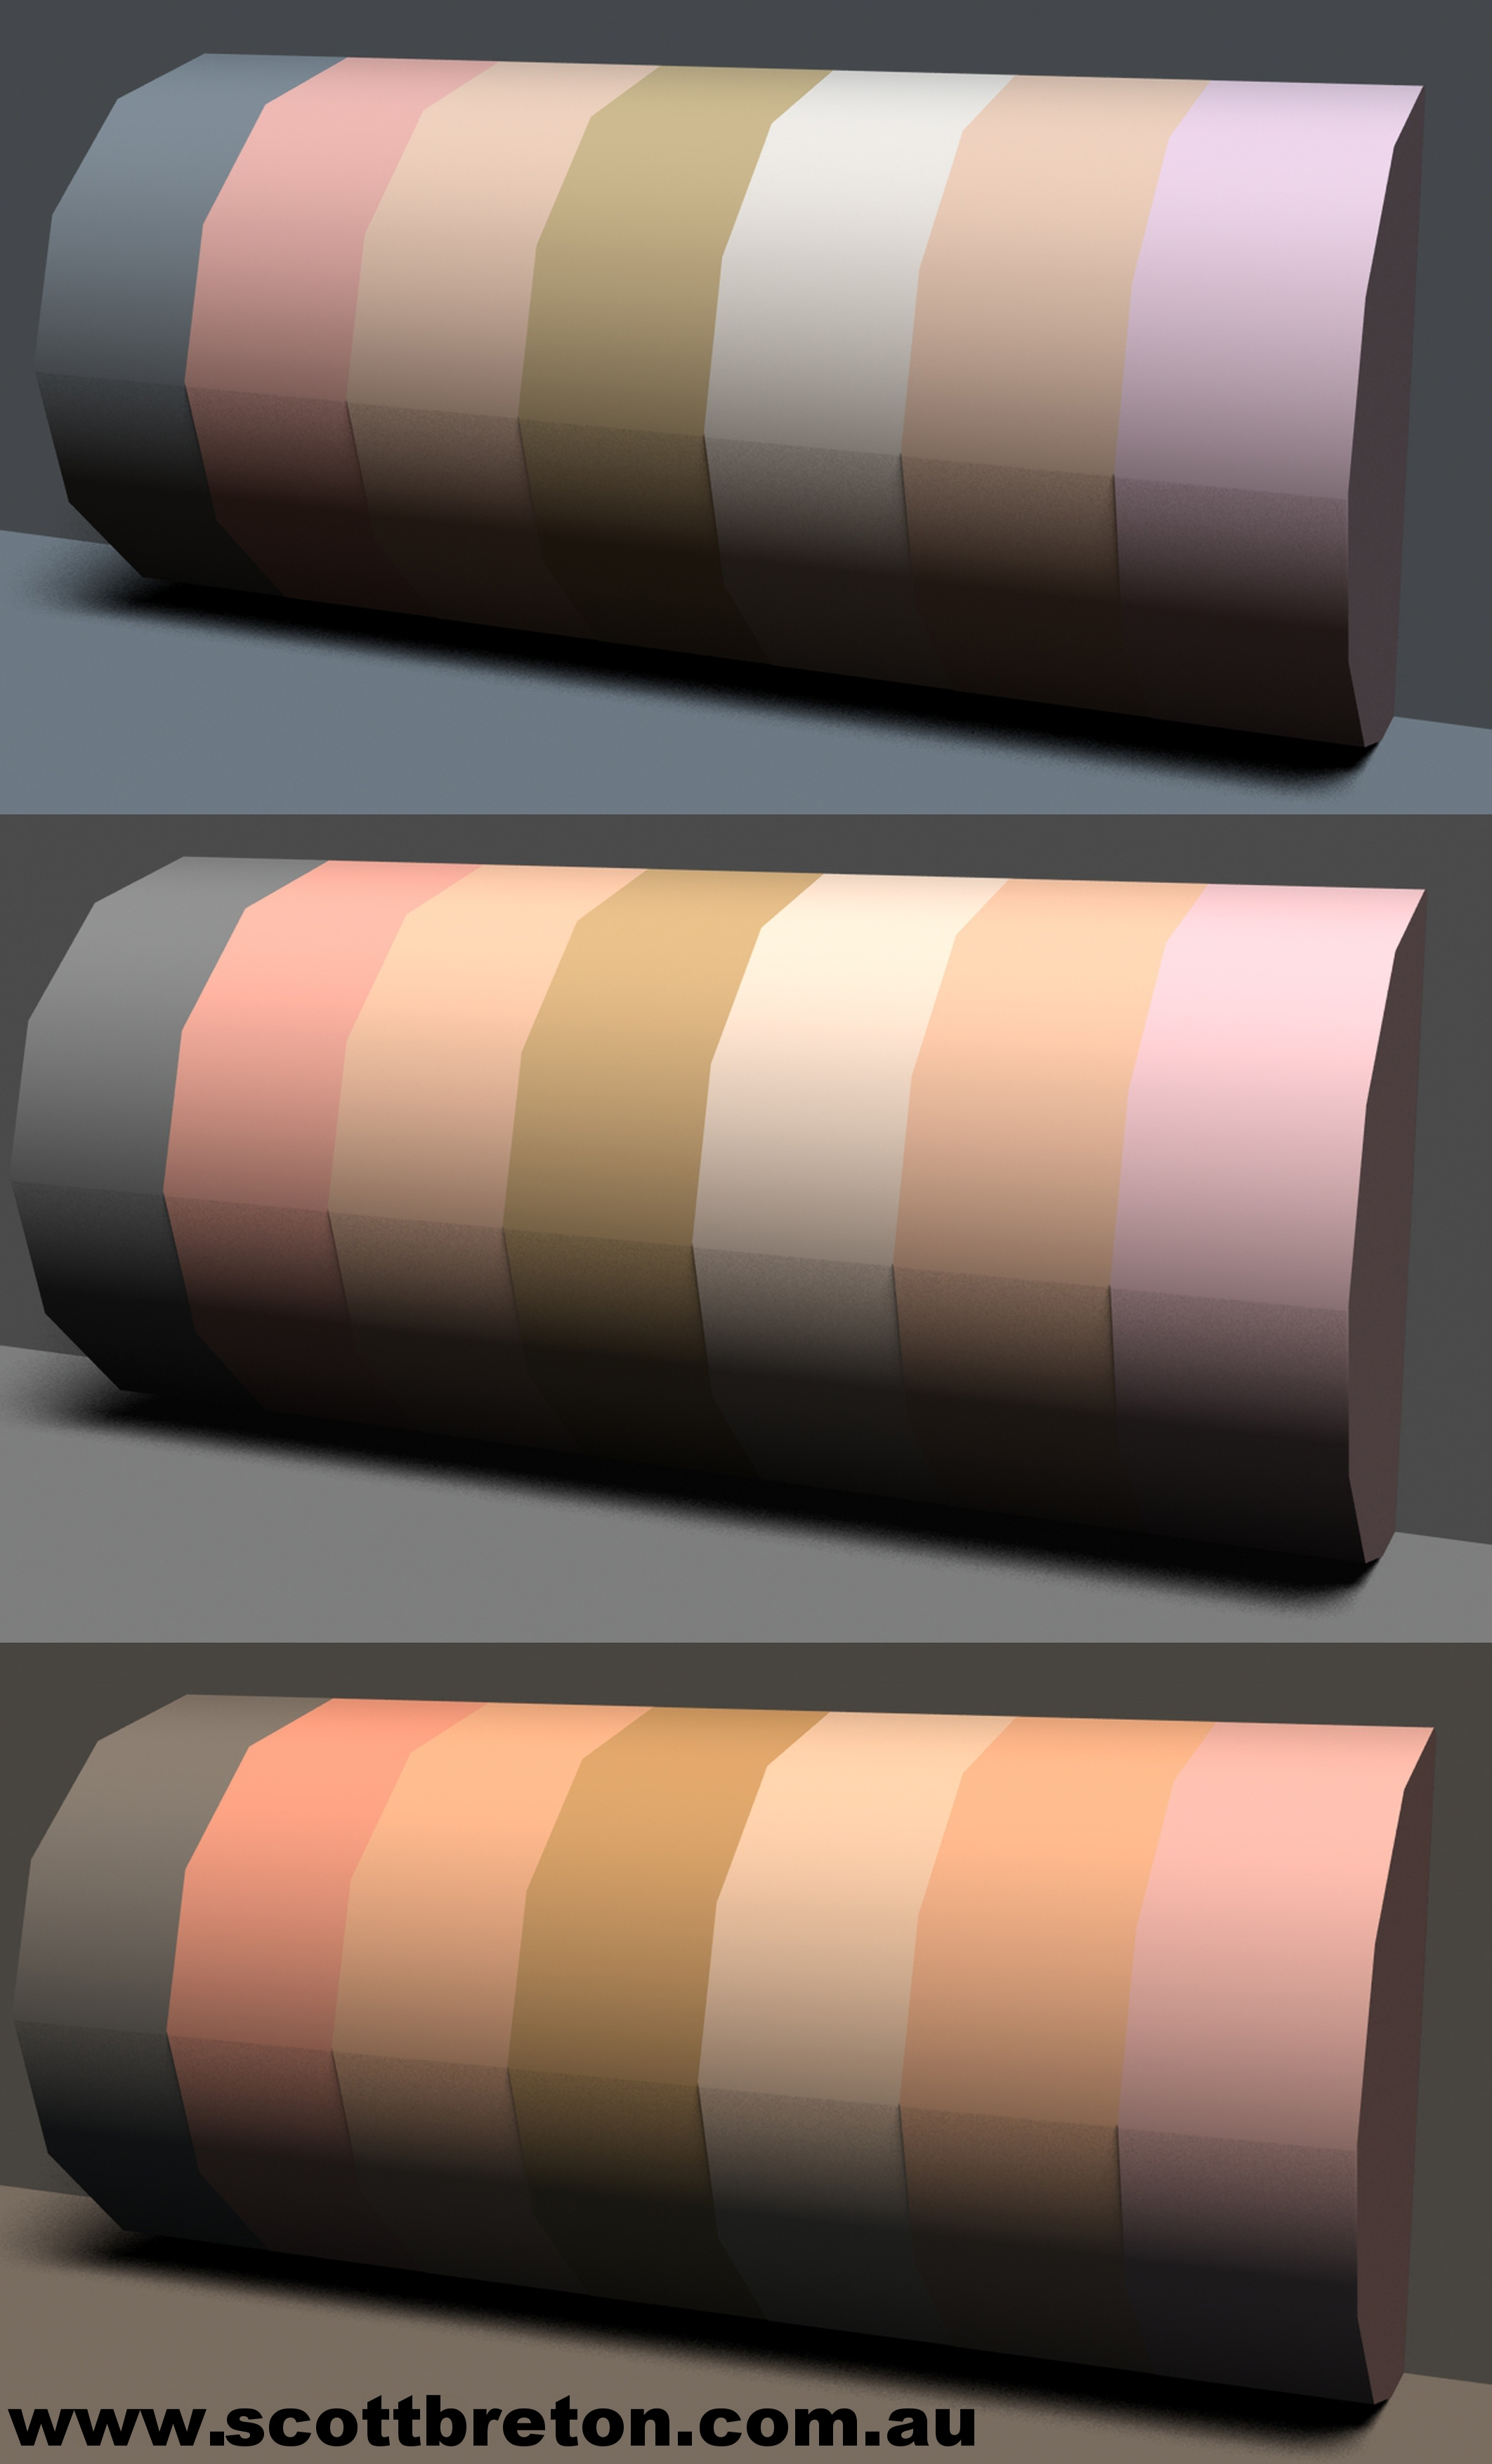 Diagram 7: same skin toned objects, lights varies